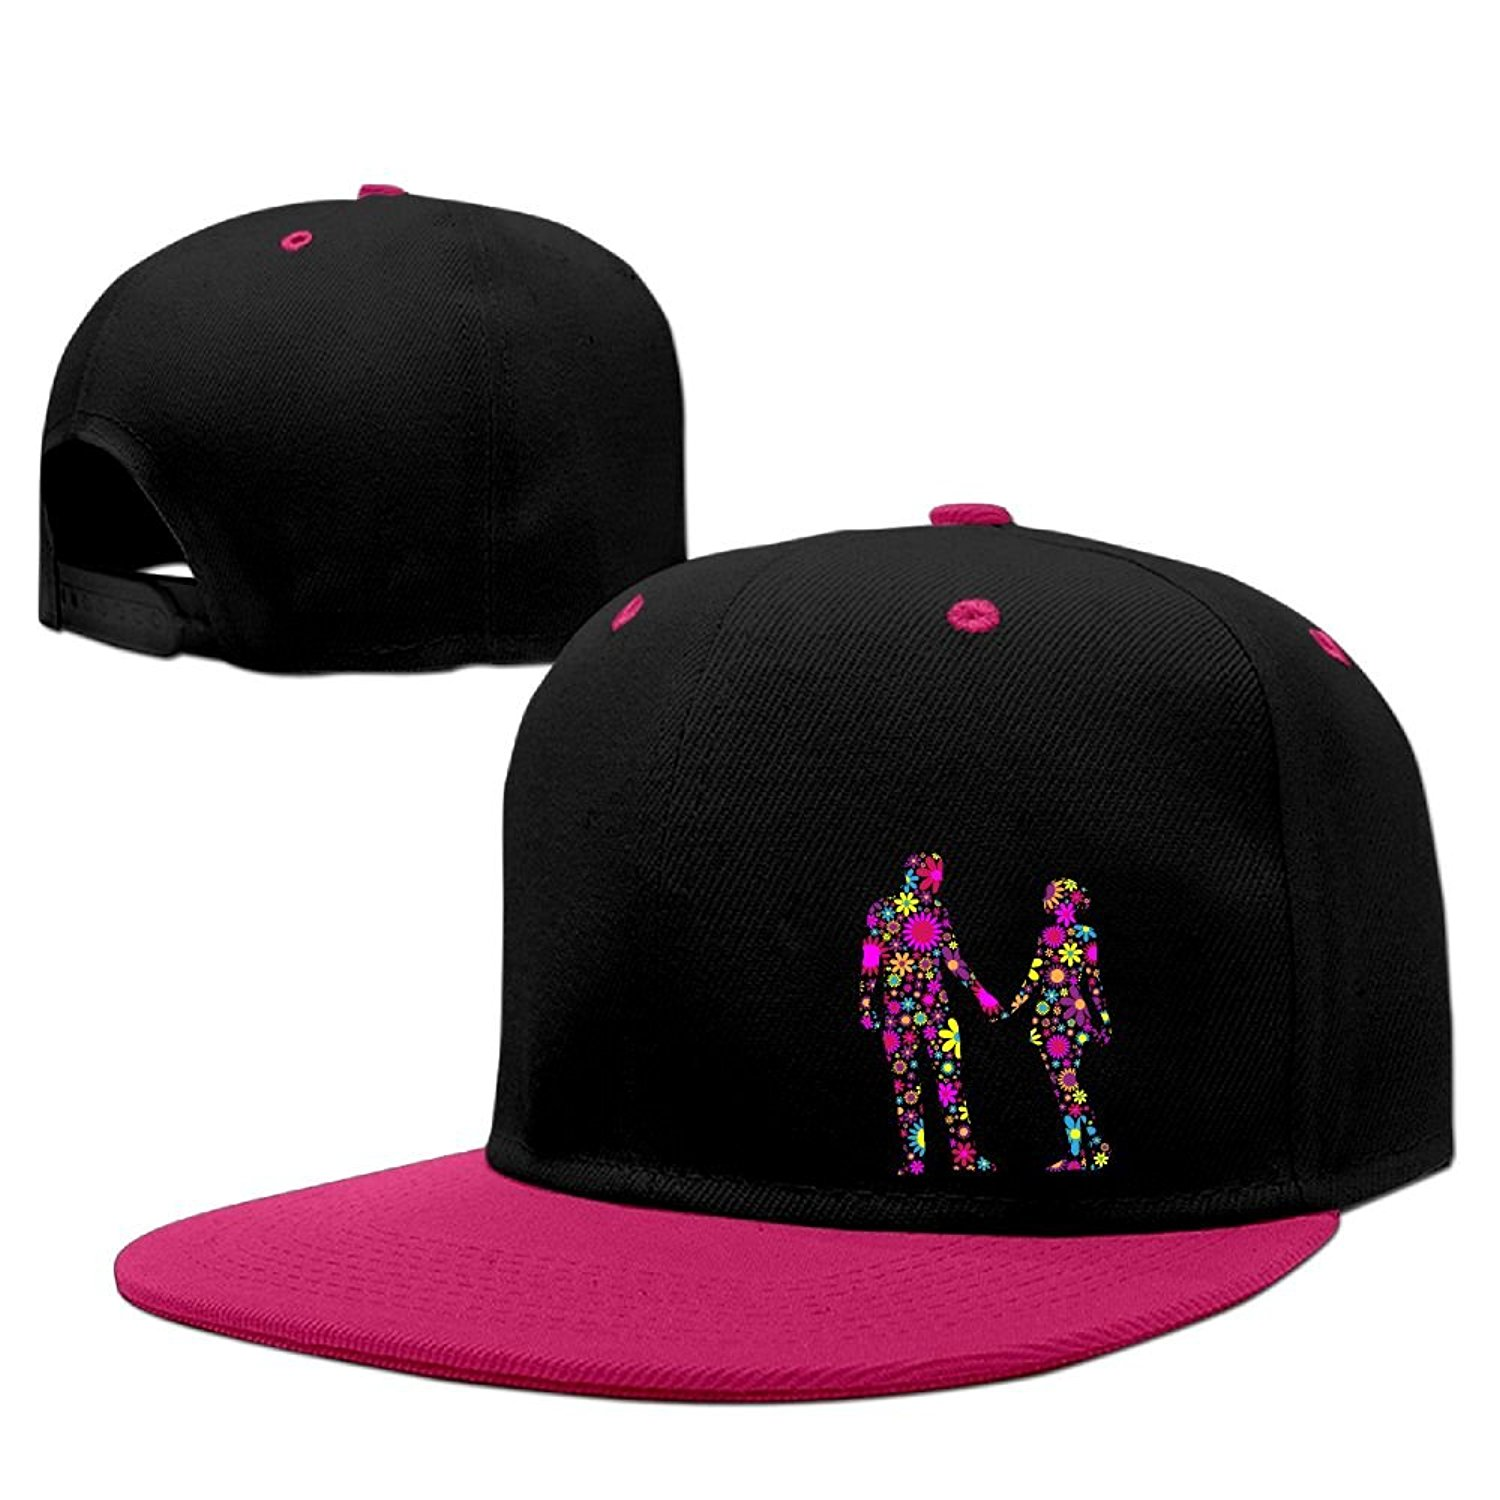 f3c7be1a472 Get Quotations · WANGZII Floral Couple Silhouette Street Dance Snapback  Adjustable Hip-Hop Hats Digital Printing Baseball Caps